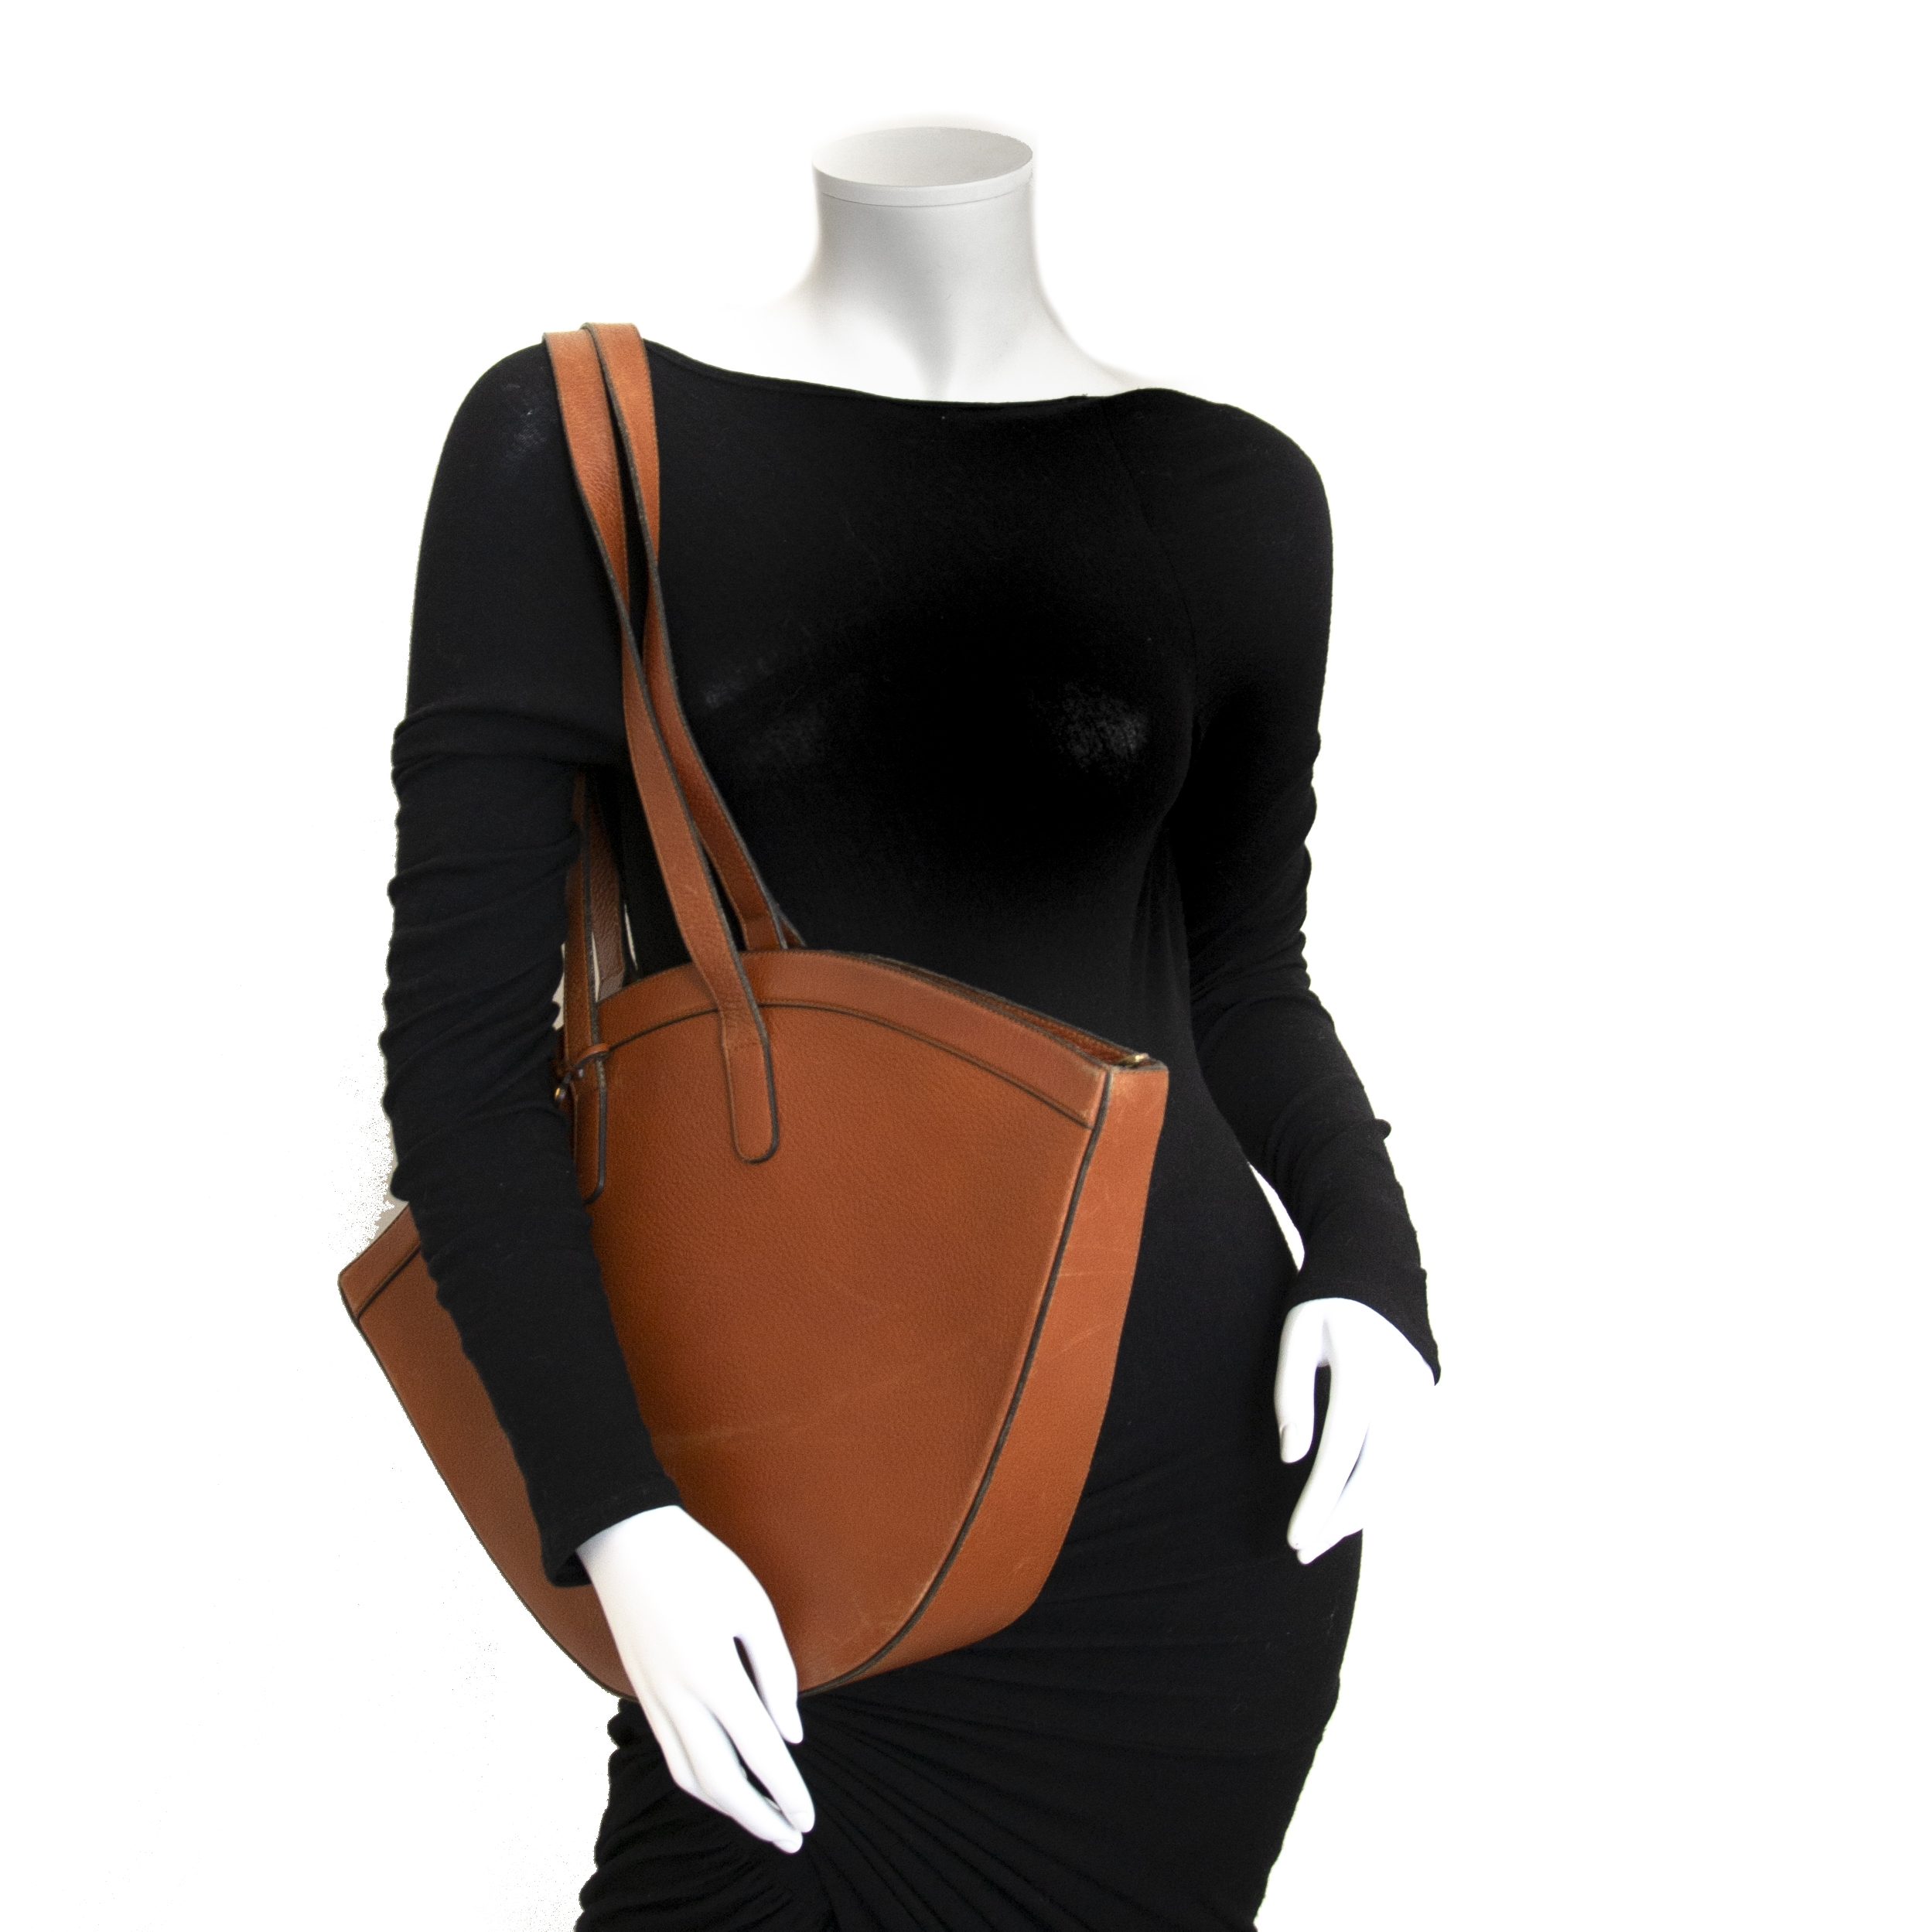 shop safe and secure online at labellov.com Delvaux Cognac Tote Bag